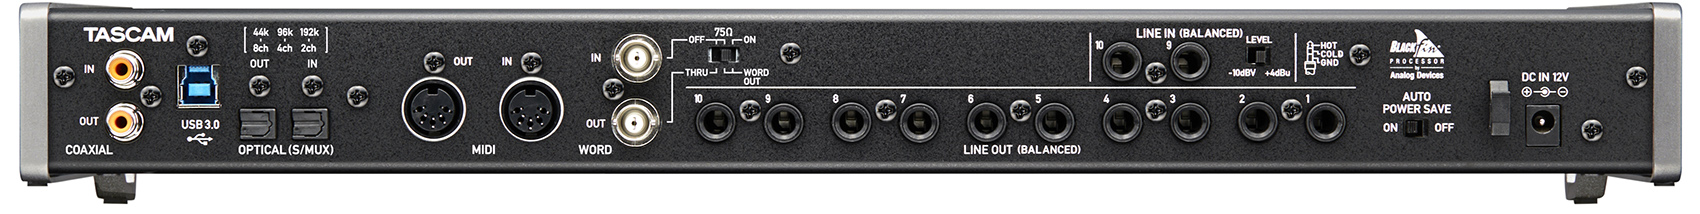 کارت صدا تسکم TASCAM US-20X20 USB 3.0 Audio Interface